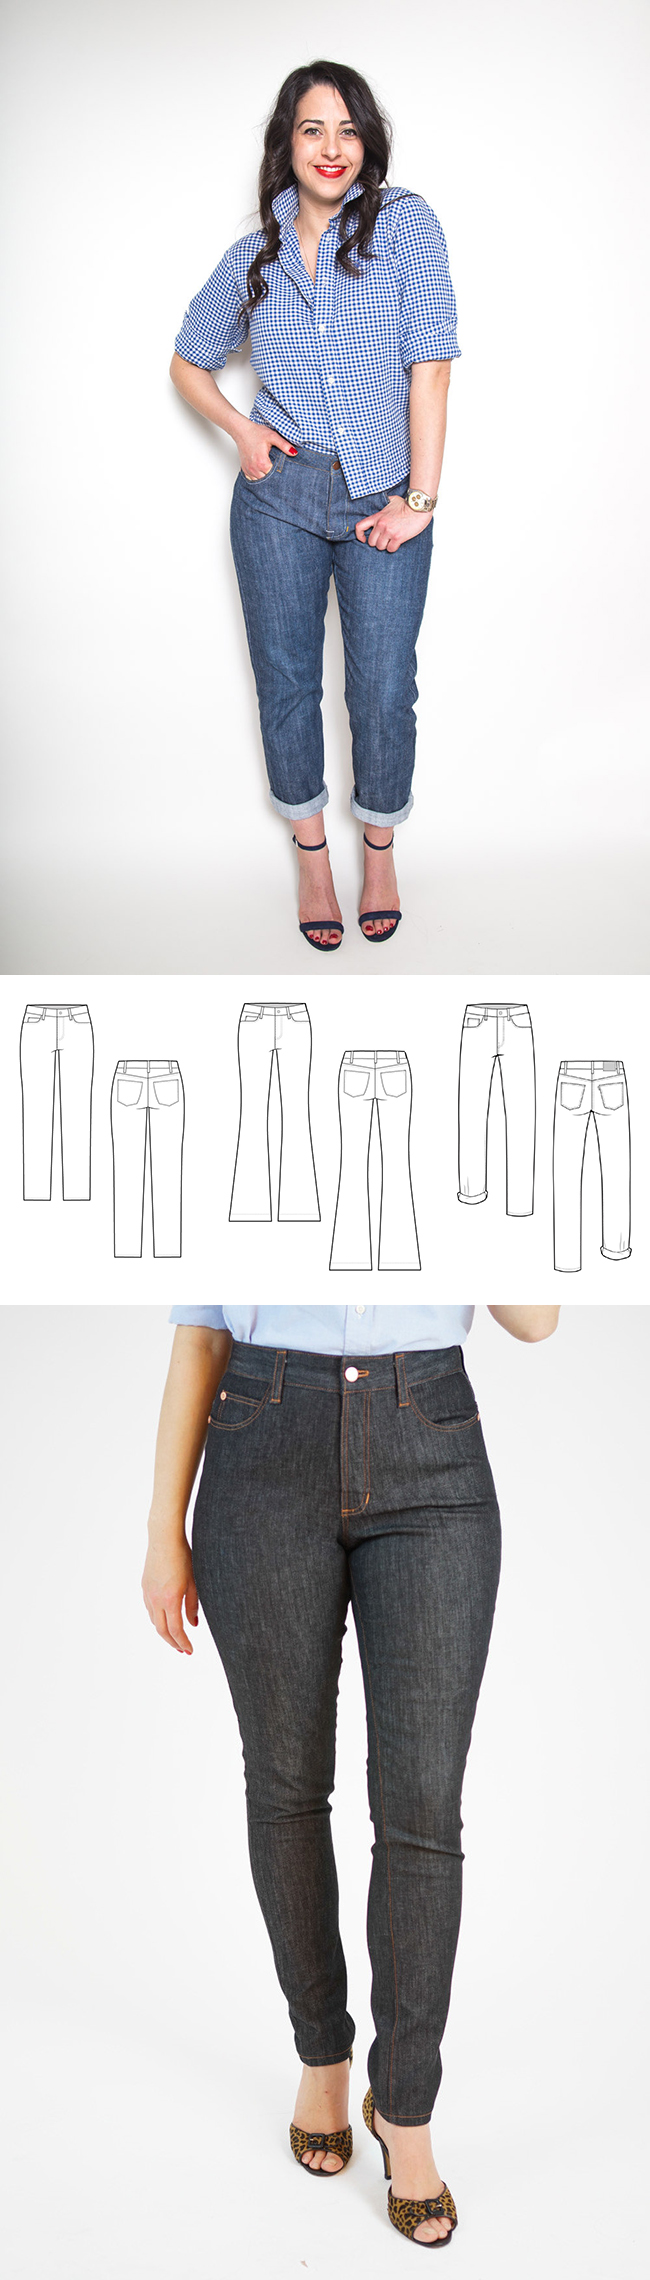 Make Your Own Basics: The blue jeans